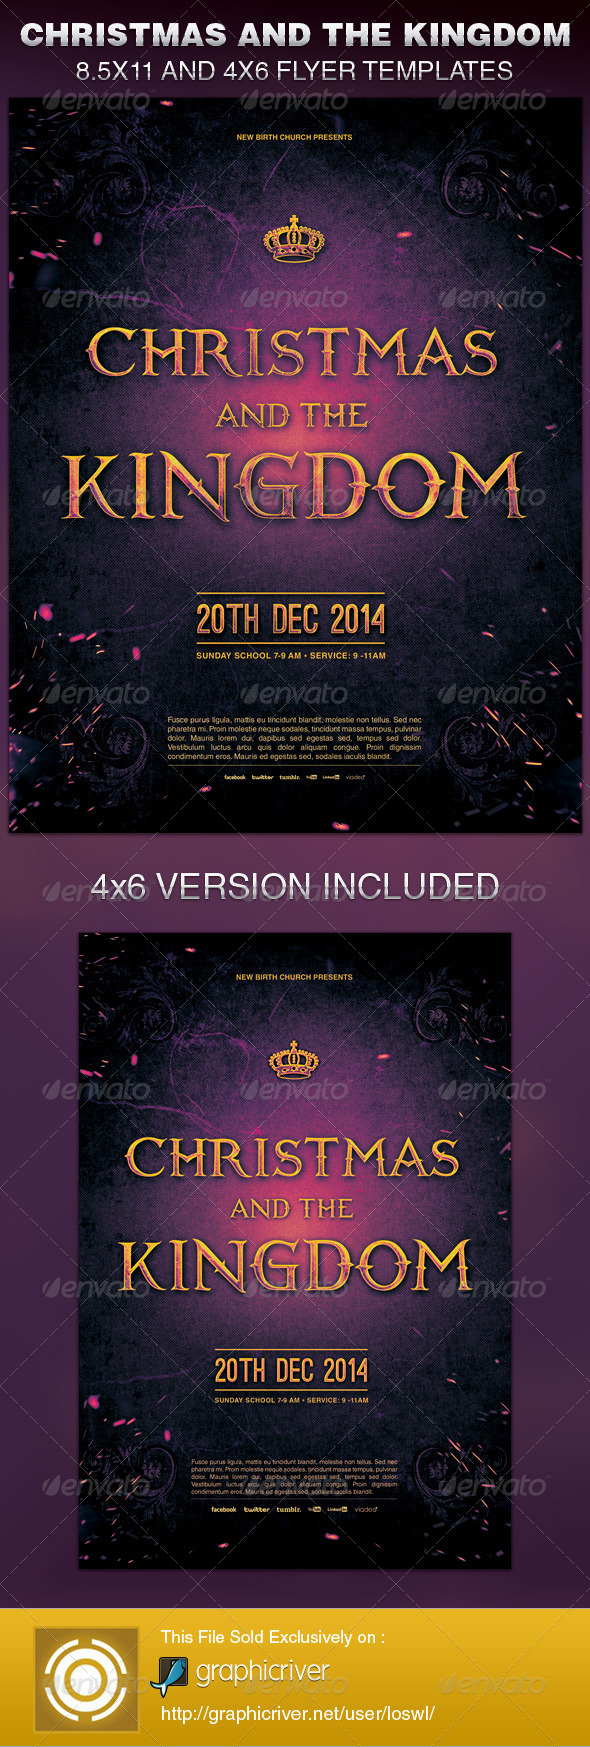 Christmas and the Kingdom Church Flyer Template - Church Flyers